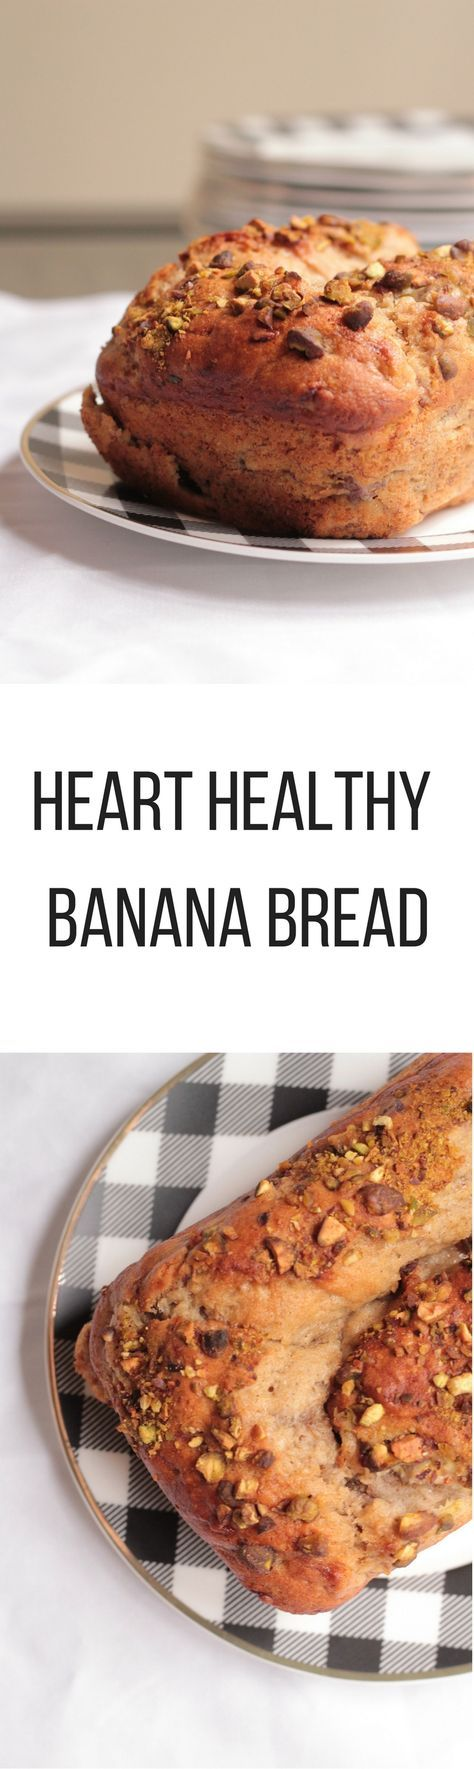 Heart Healthy Banana bread is low in saturated fat and sodium, rich in potassium and a source of fiber and plant stanols shown to reduce blood cholesterol levels.